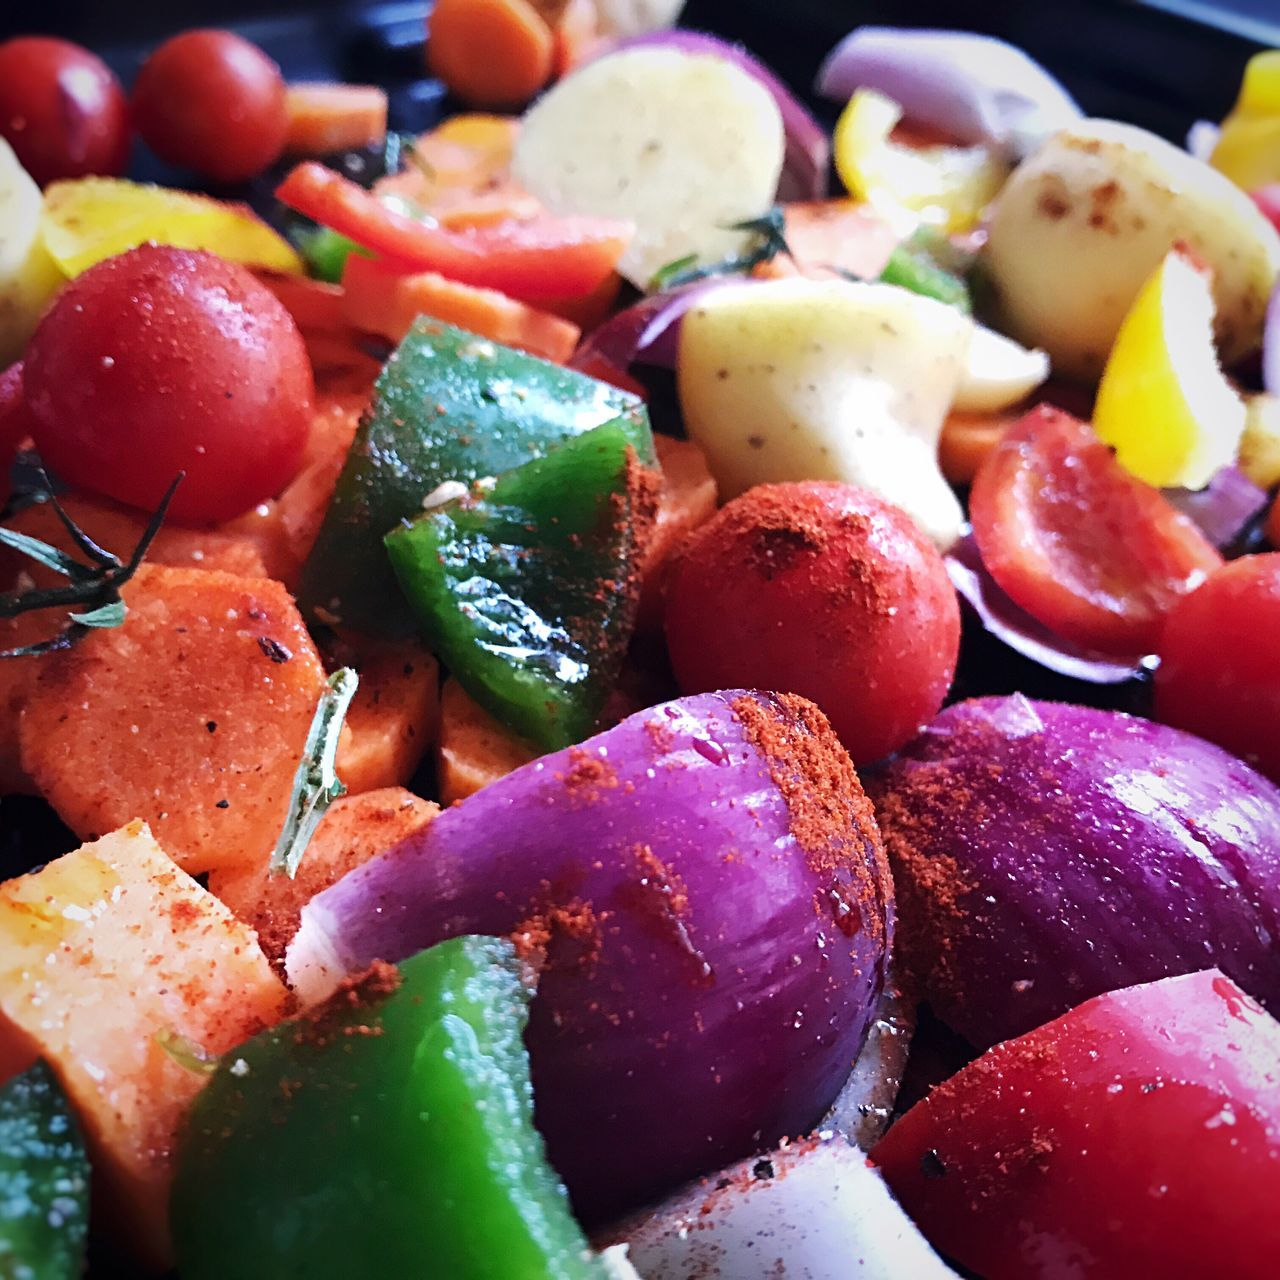 Let's roast some veg... Roasted Vegetables Cooking Preparations Mixed Vegetables Smoked Paprika Garlic Clove Olive Oil Soup Ingredients